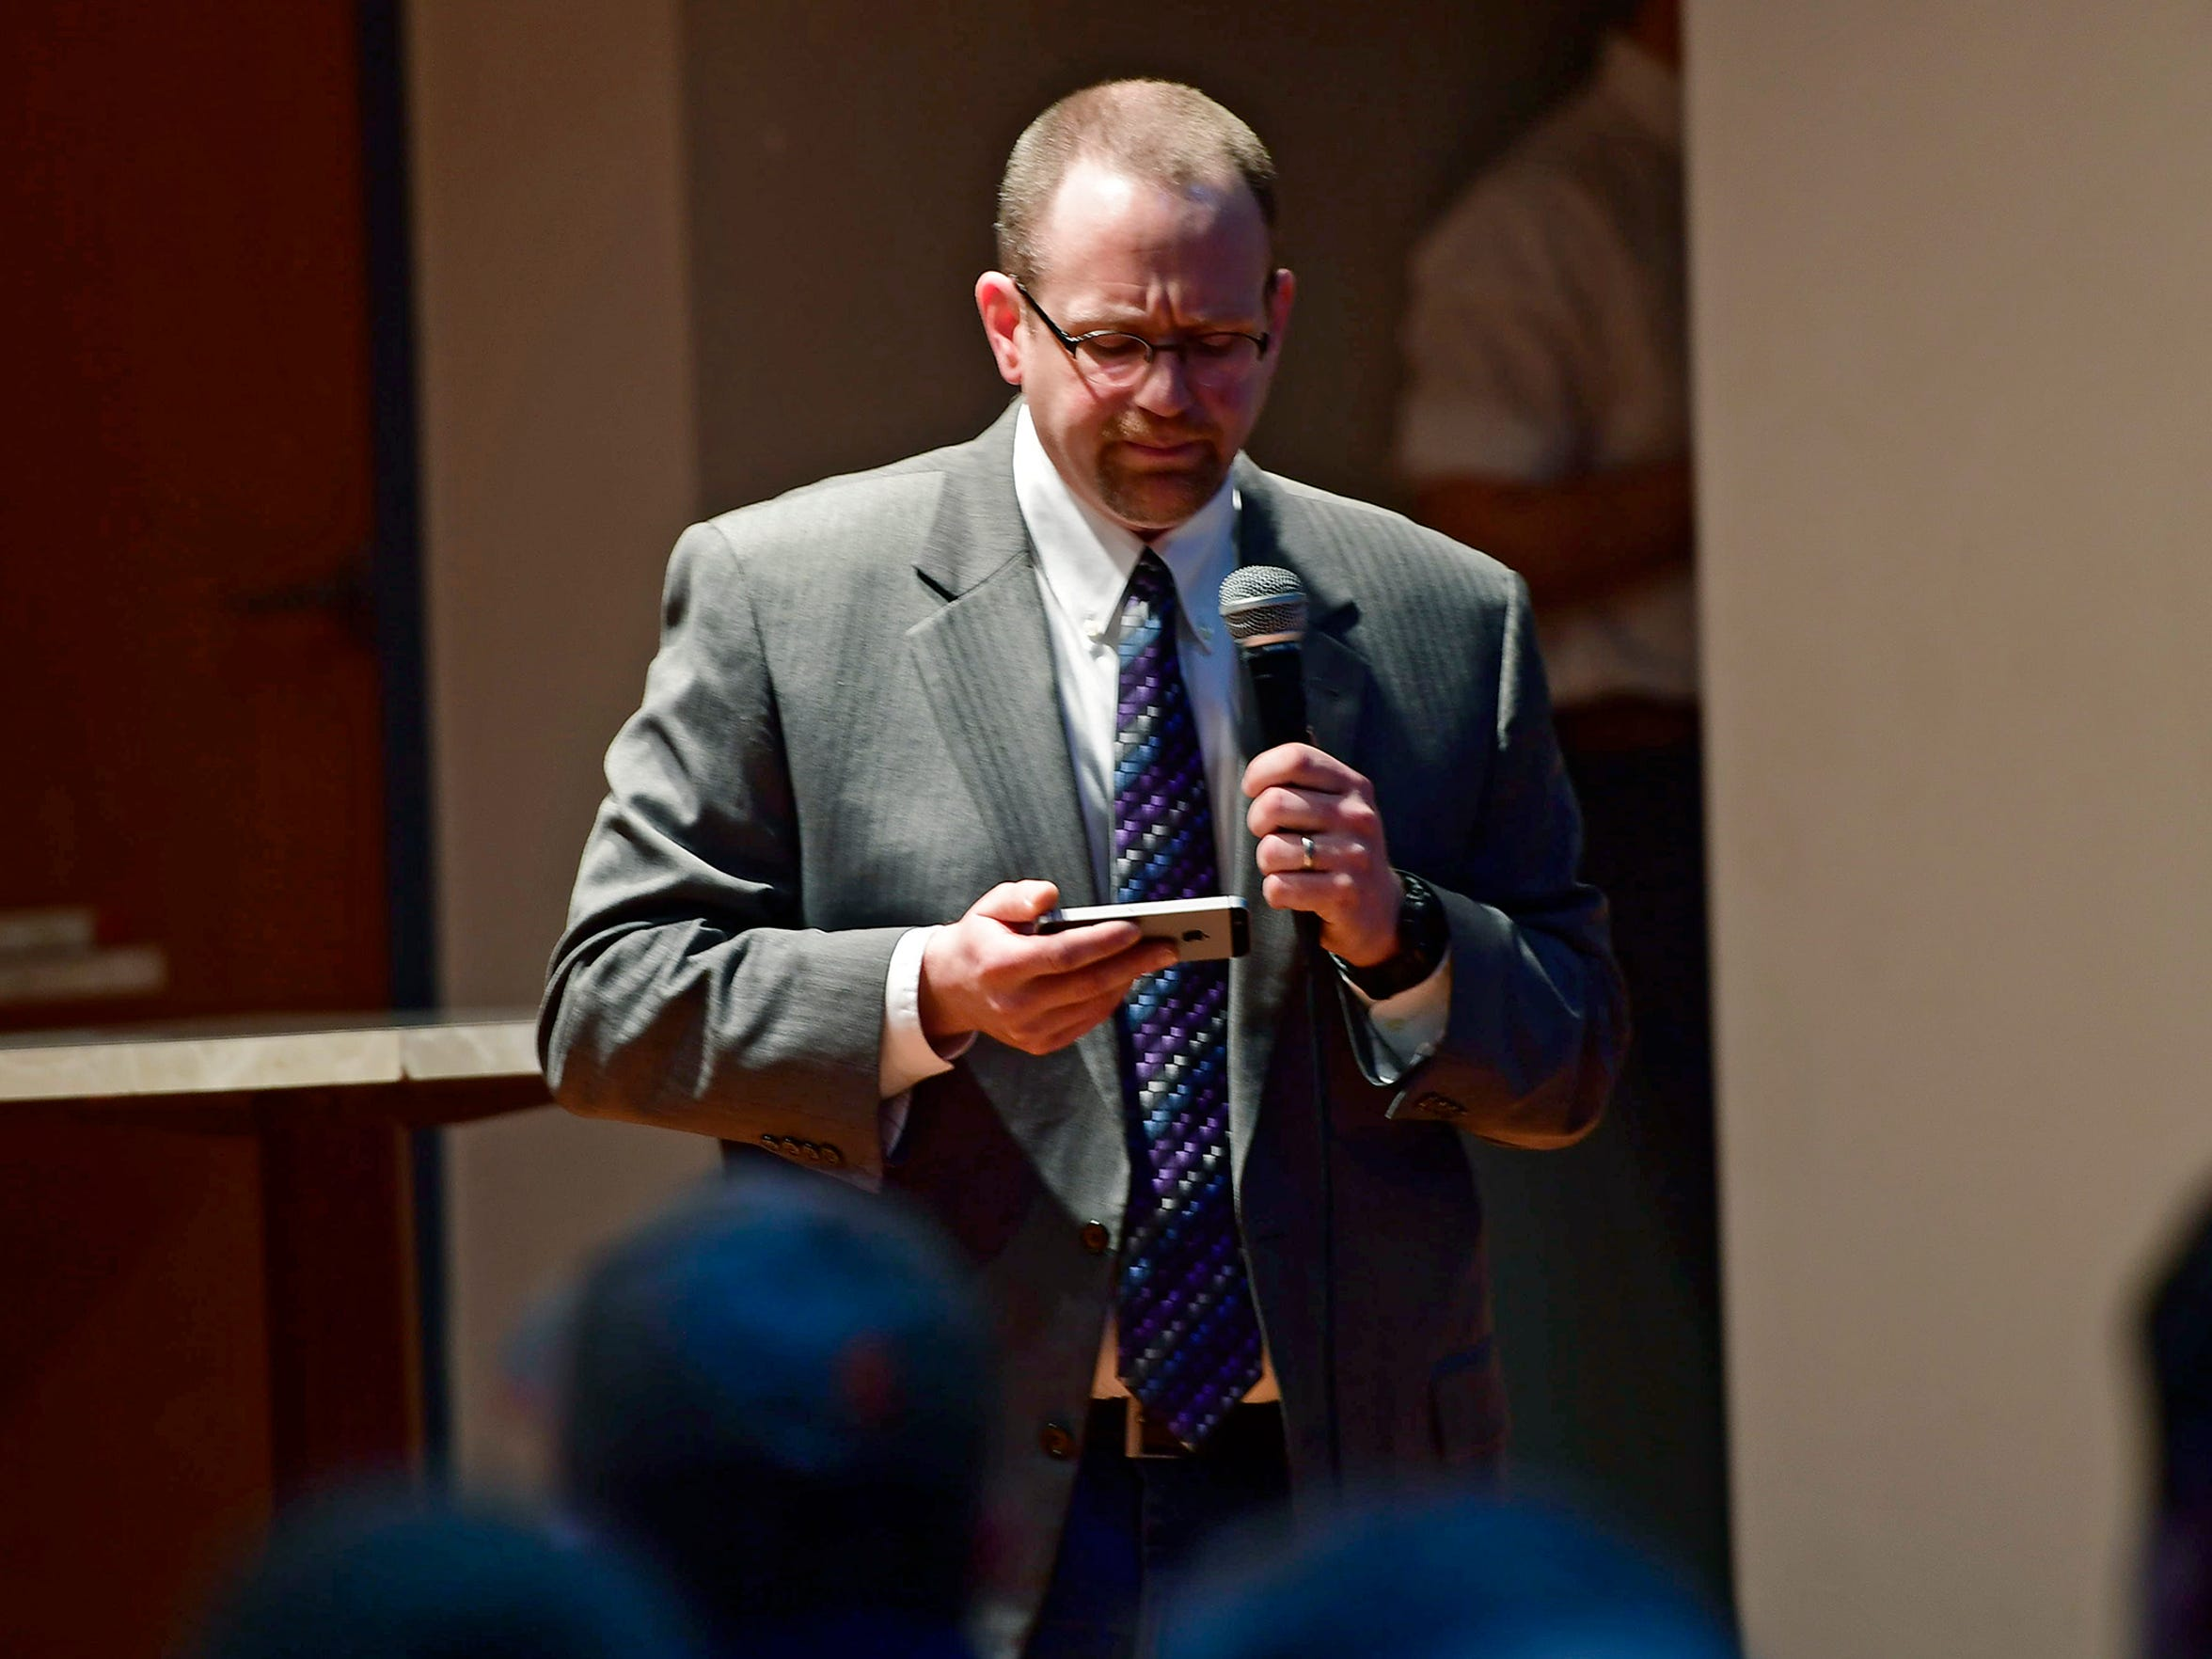 In this photo from Feb. 22, Matt Menges, an attorney in York, speaks about concealed carry laws during a seminar.